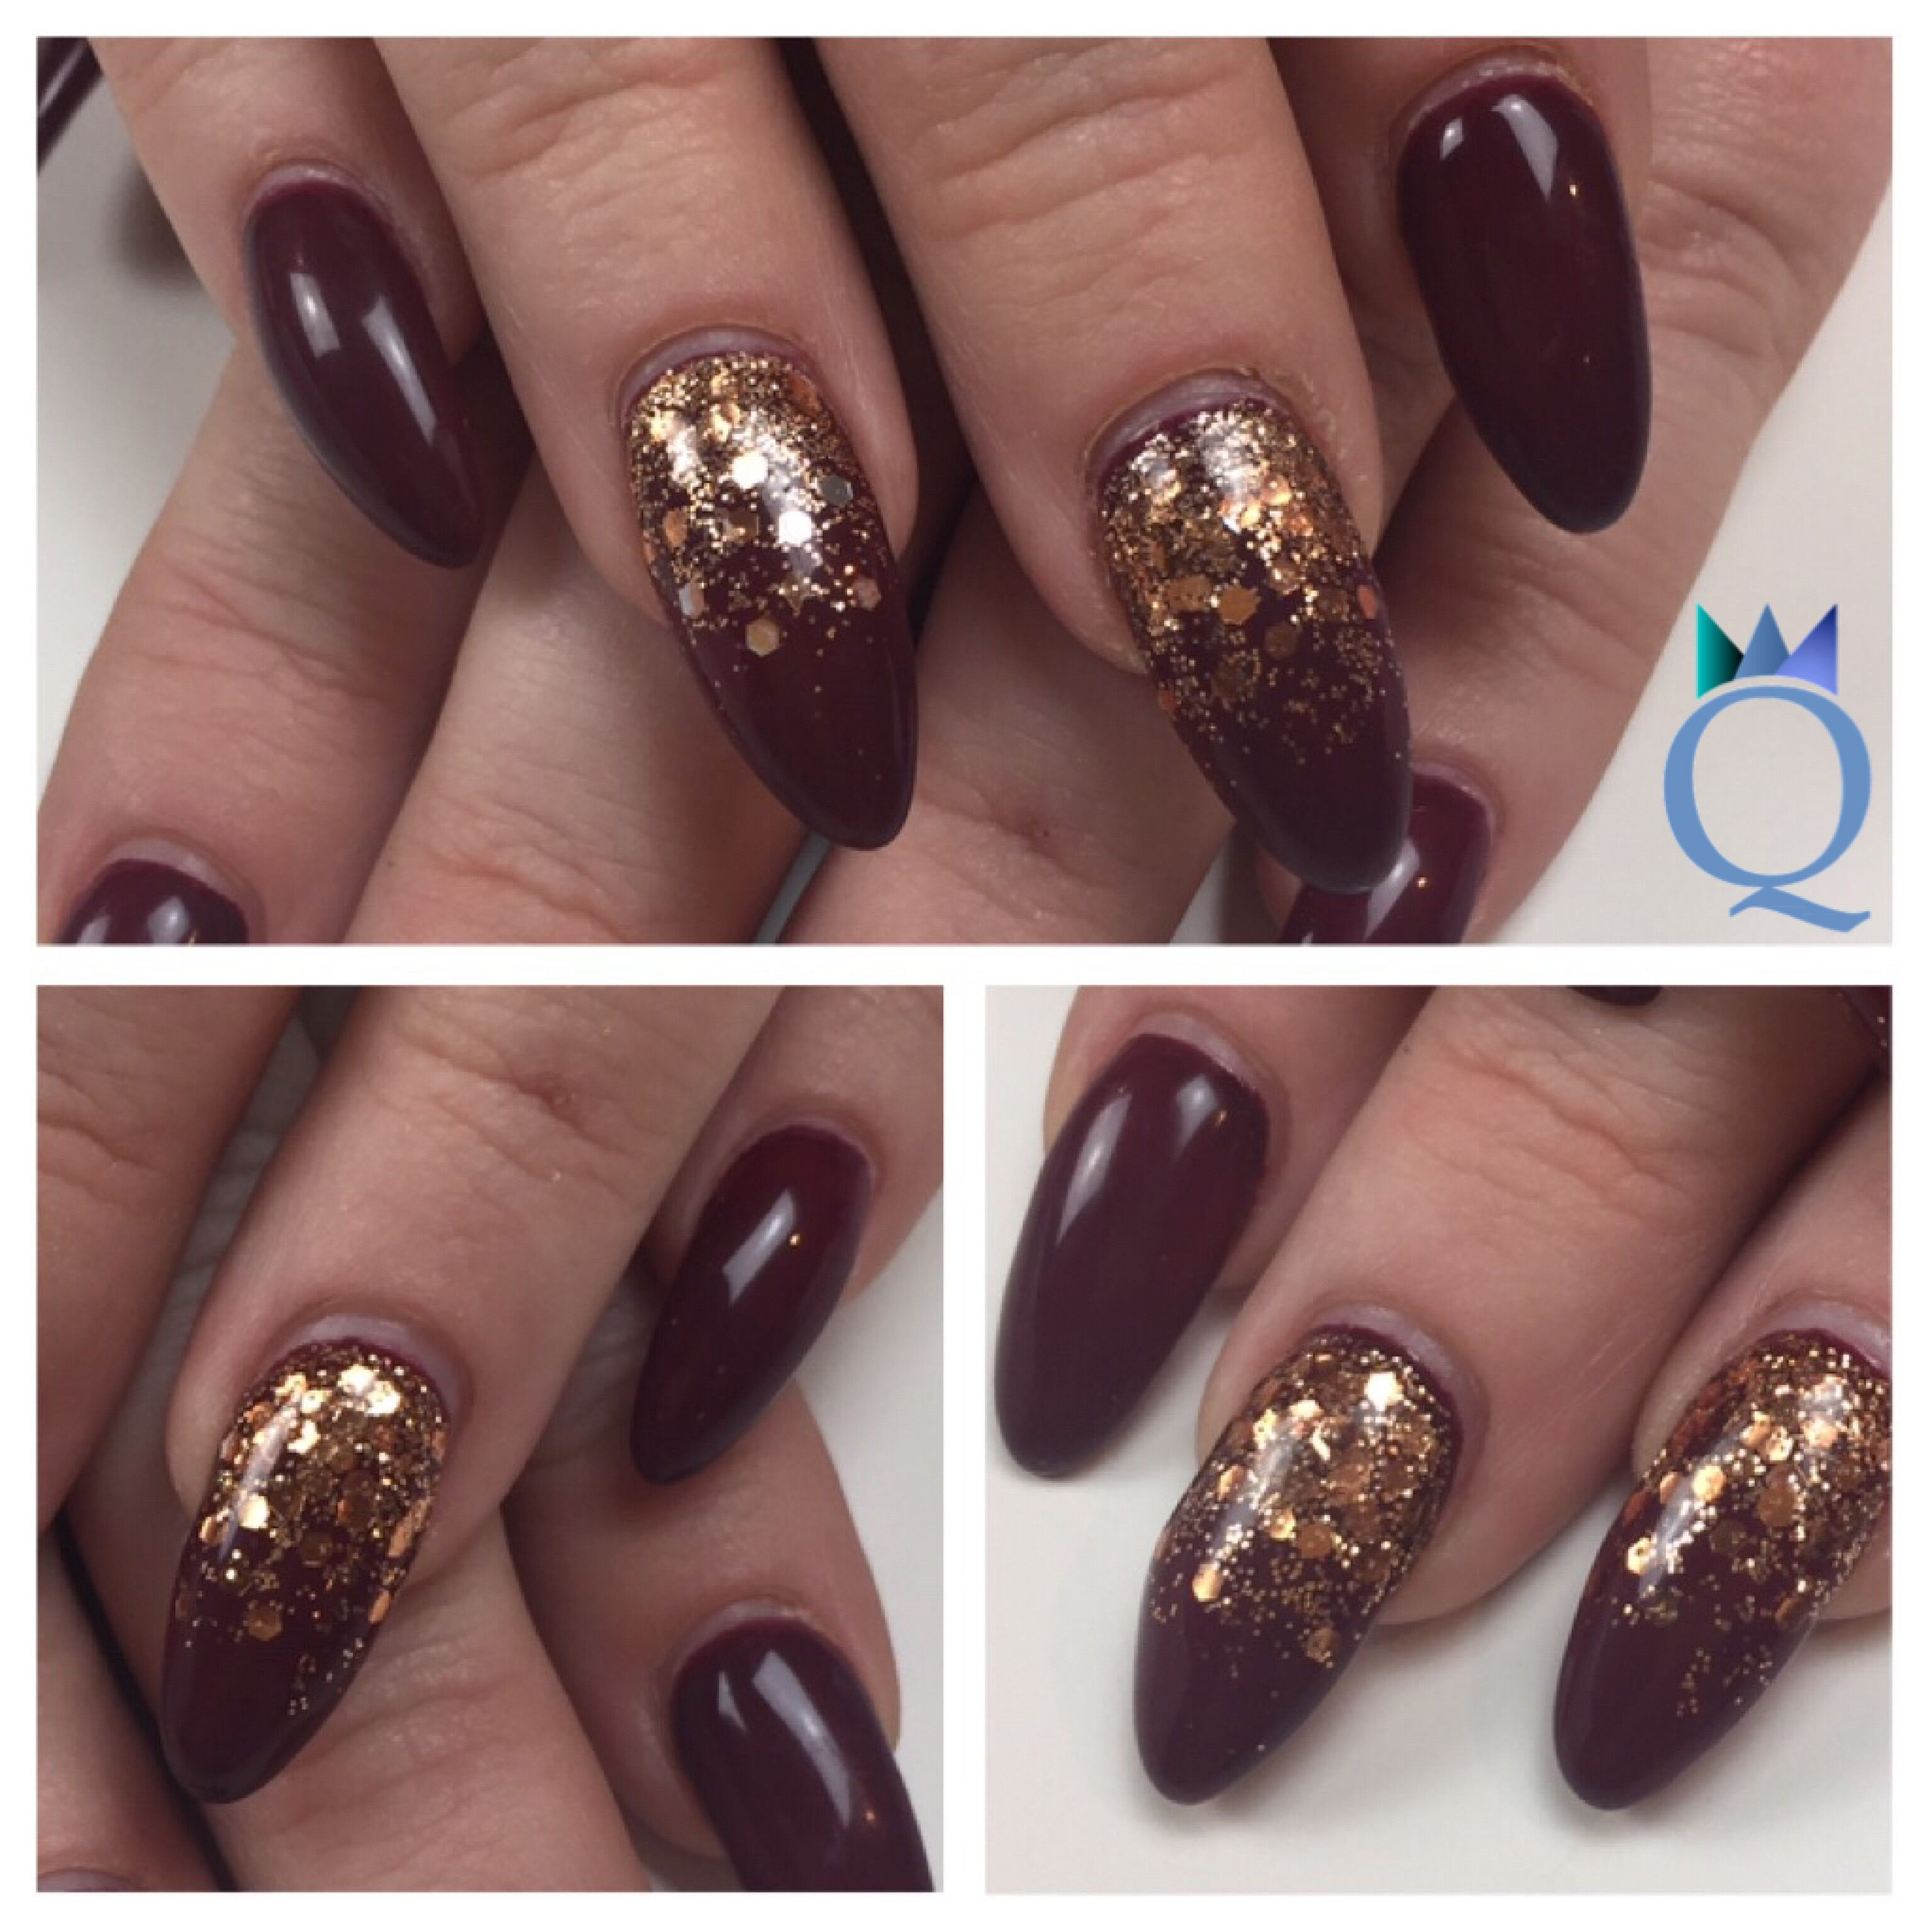 almondnails #gelnails #nails #darkred #rosegold #glitter #akyado ...